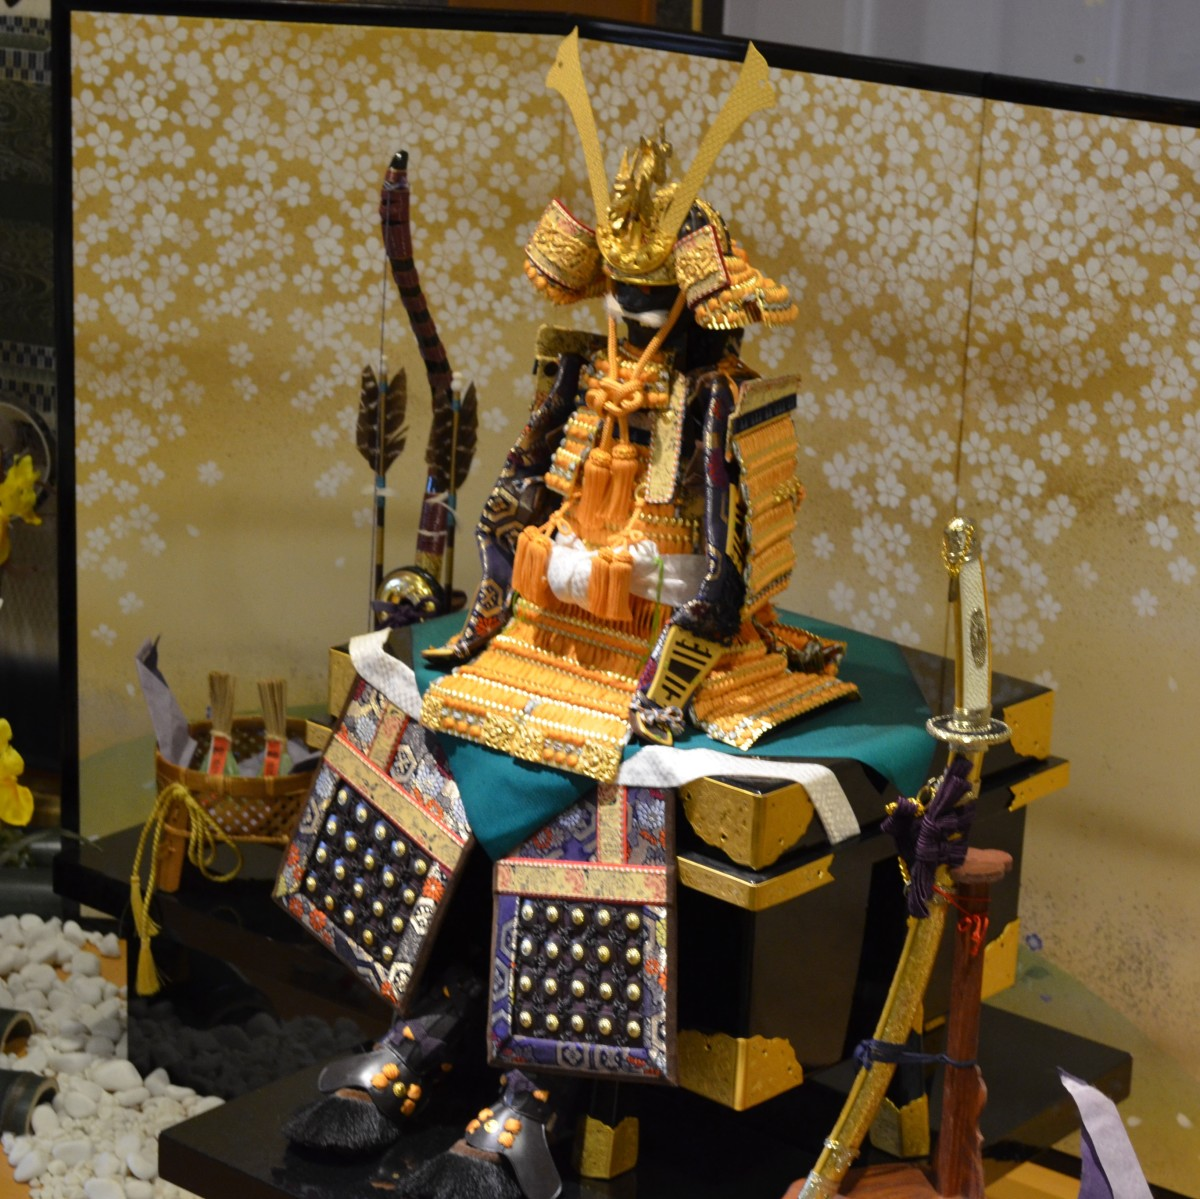 Samurai warrior display in Arima, Japan